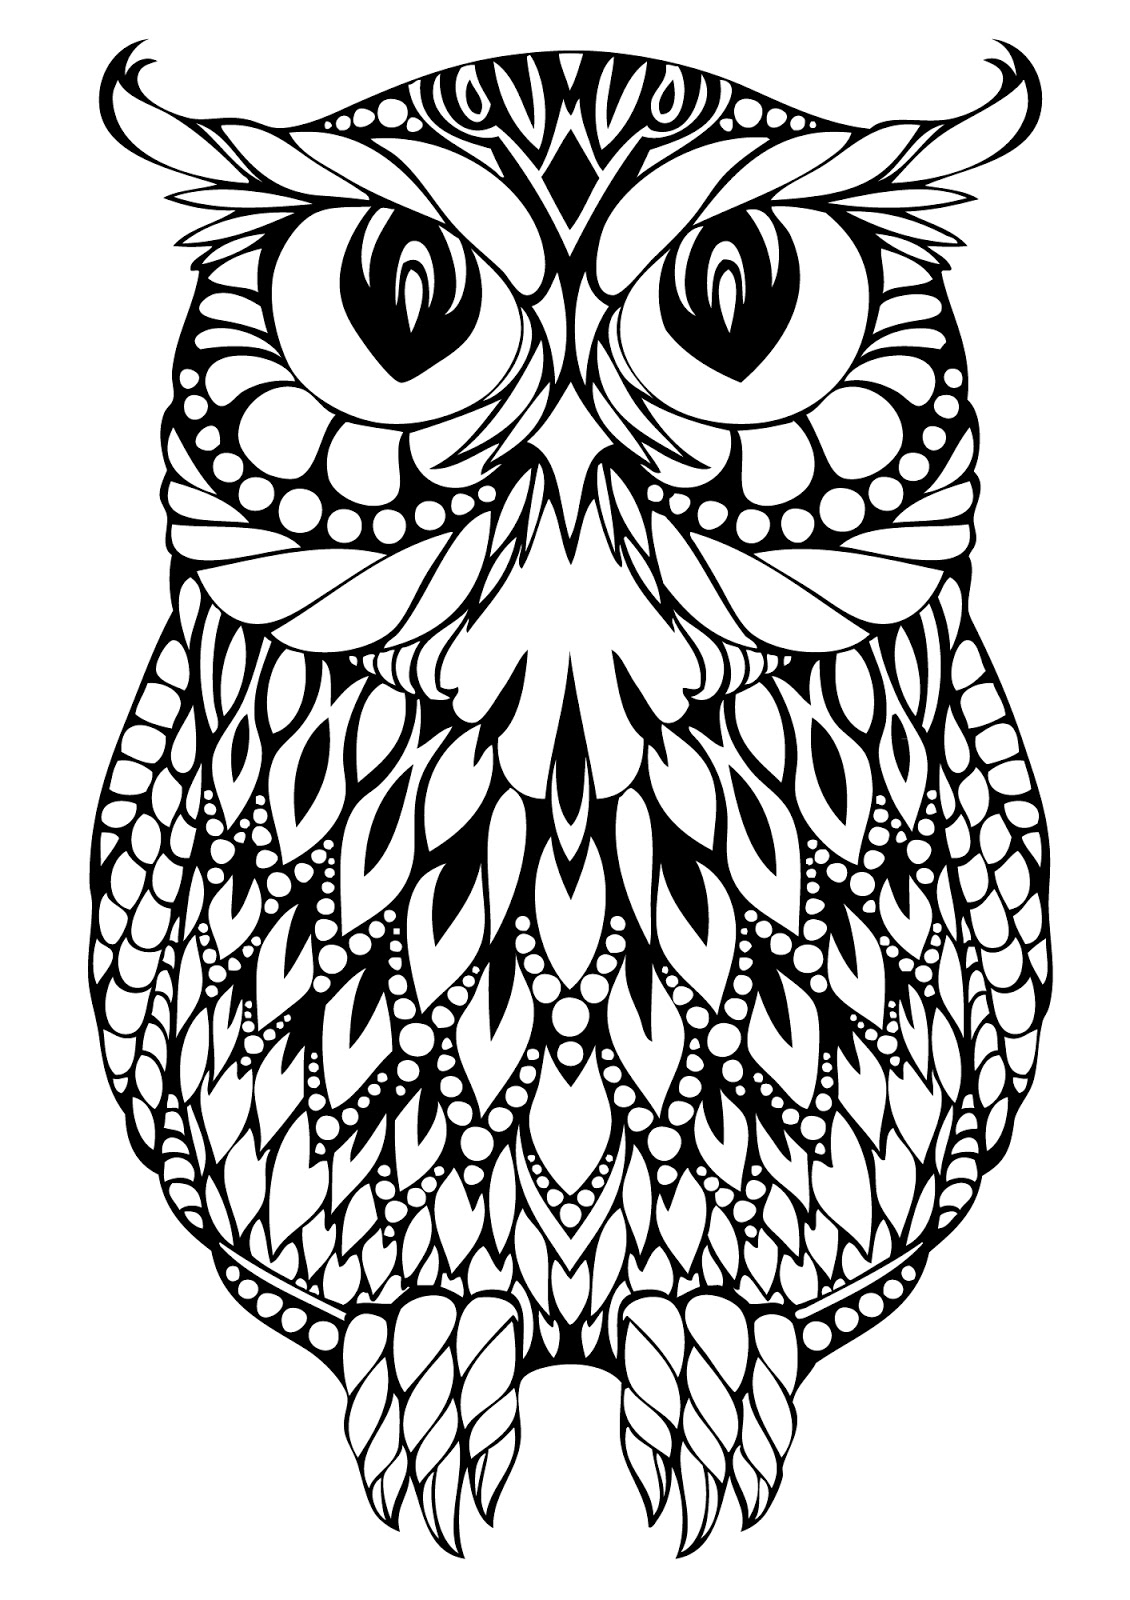 black and white coloring pages for adults tree black white flowers adult coloring pages page 2 and black pages adults white coloring for